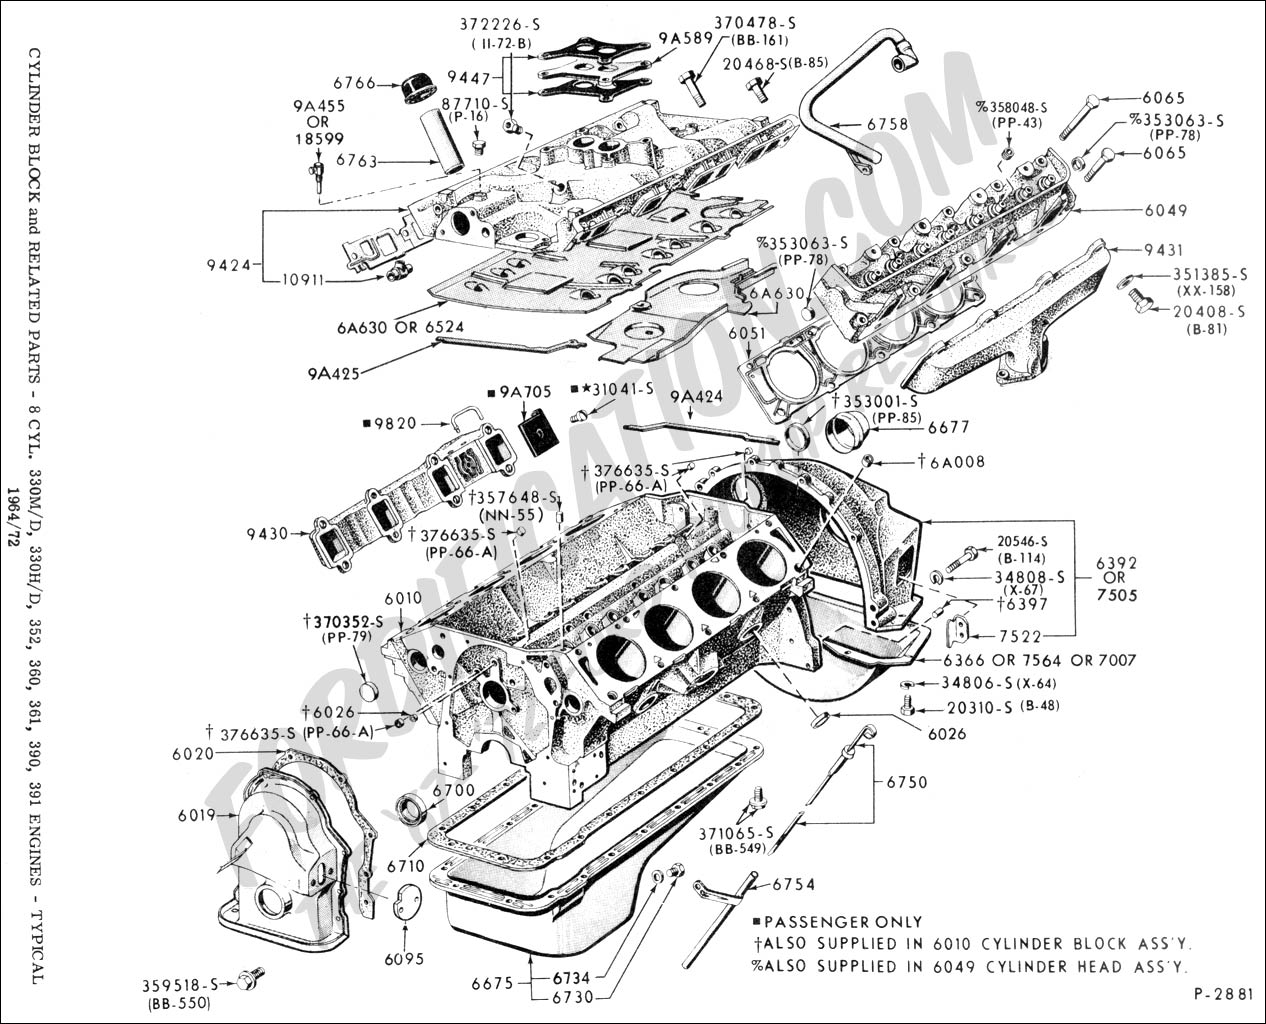 blueprints ford mustang engine diagram ford truck technical drawings and schematics - section e ... 2007 ford mustang engine diagram #12